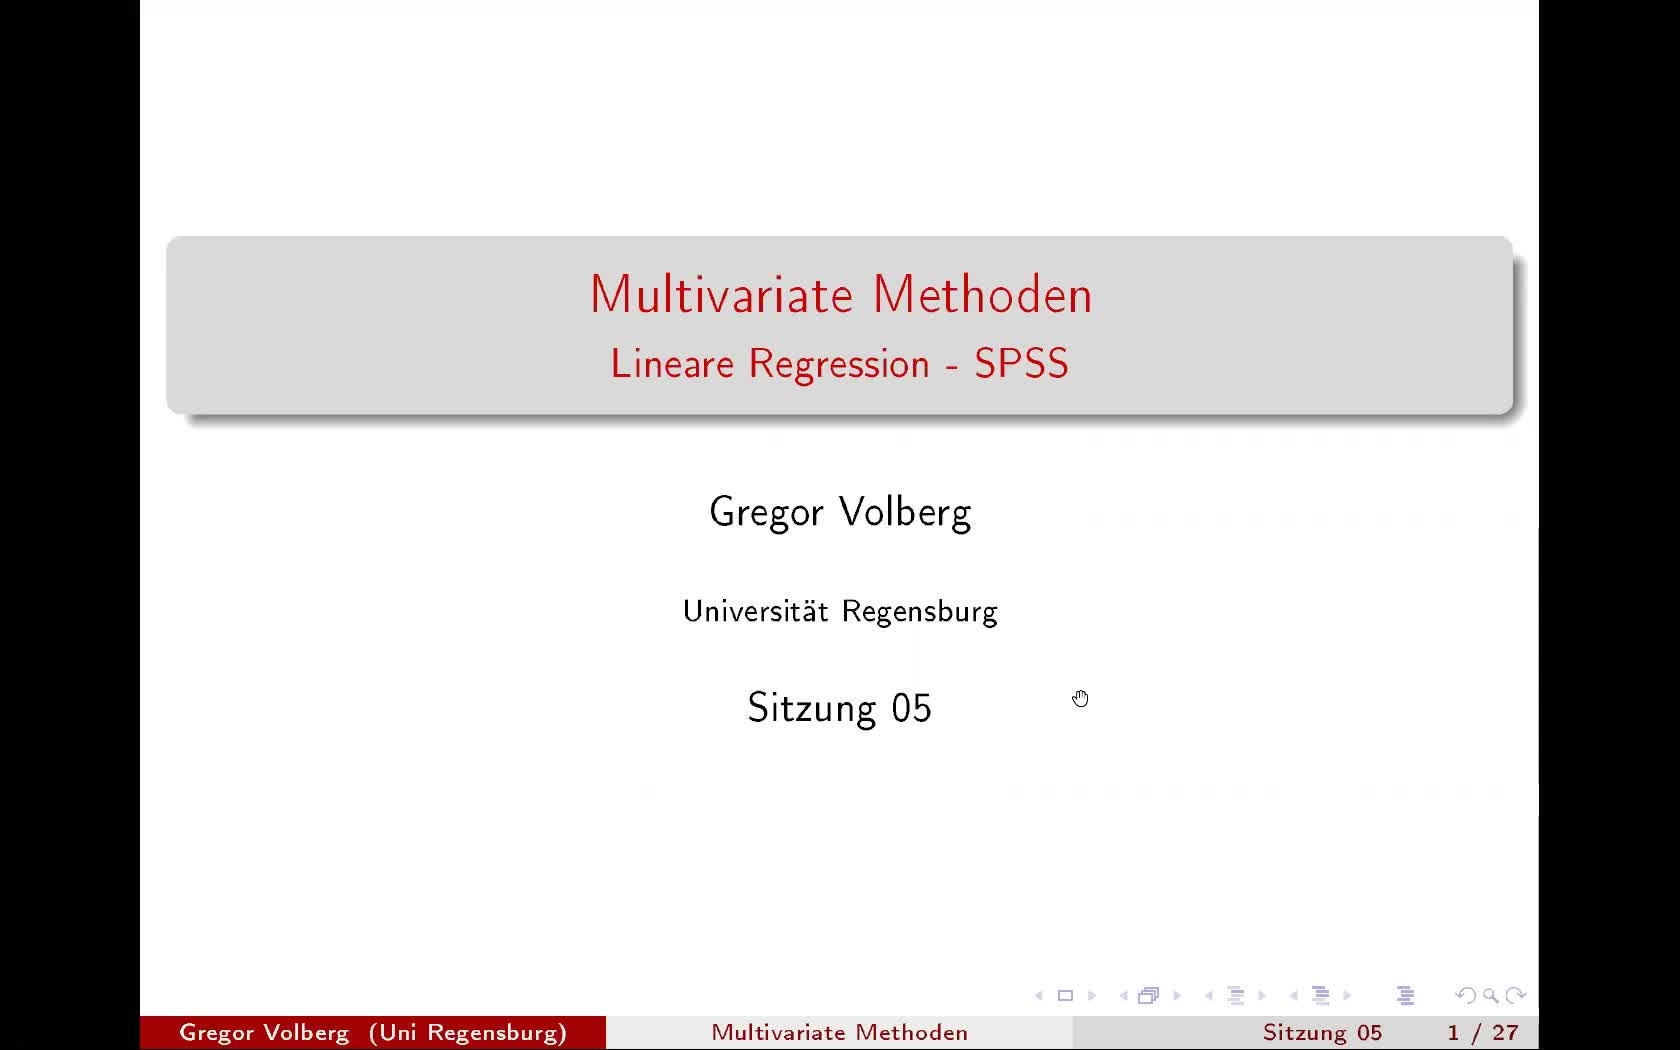 Lineare Regression - SPSS